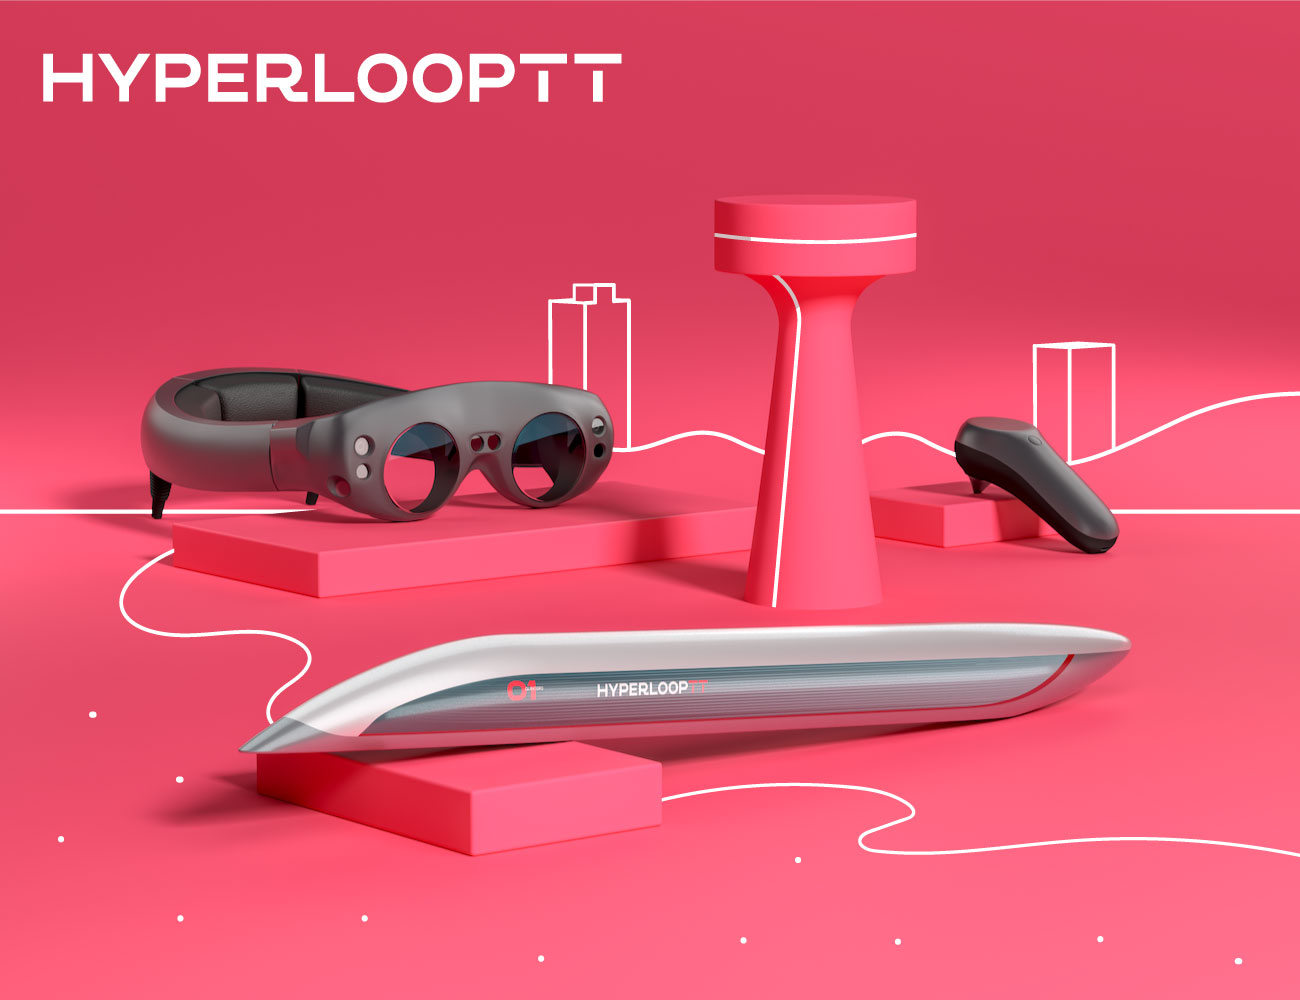 hyperloop_hero_image_ar_xr